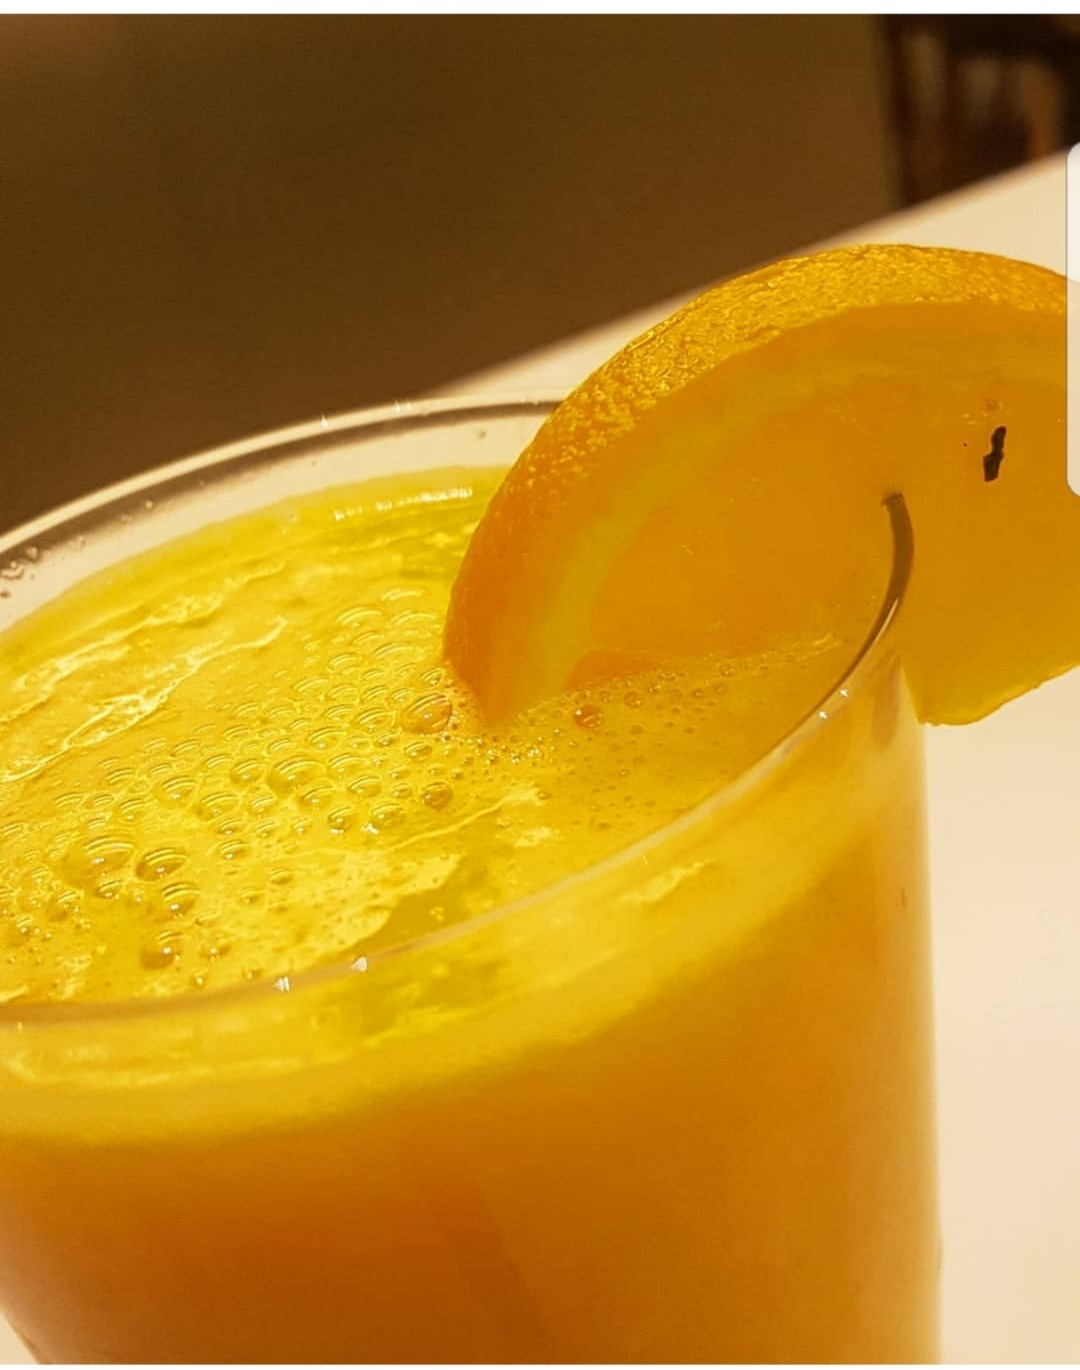 Orange juice @ Nino - Bahrain